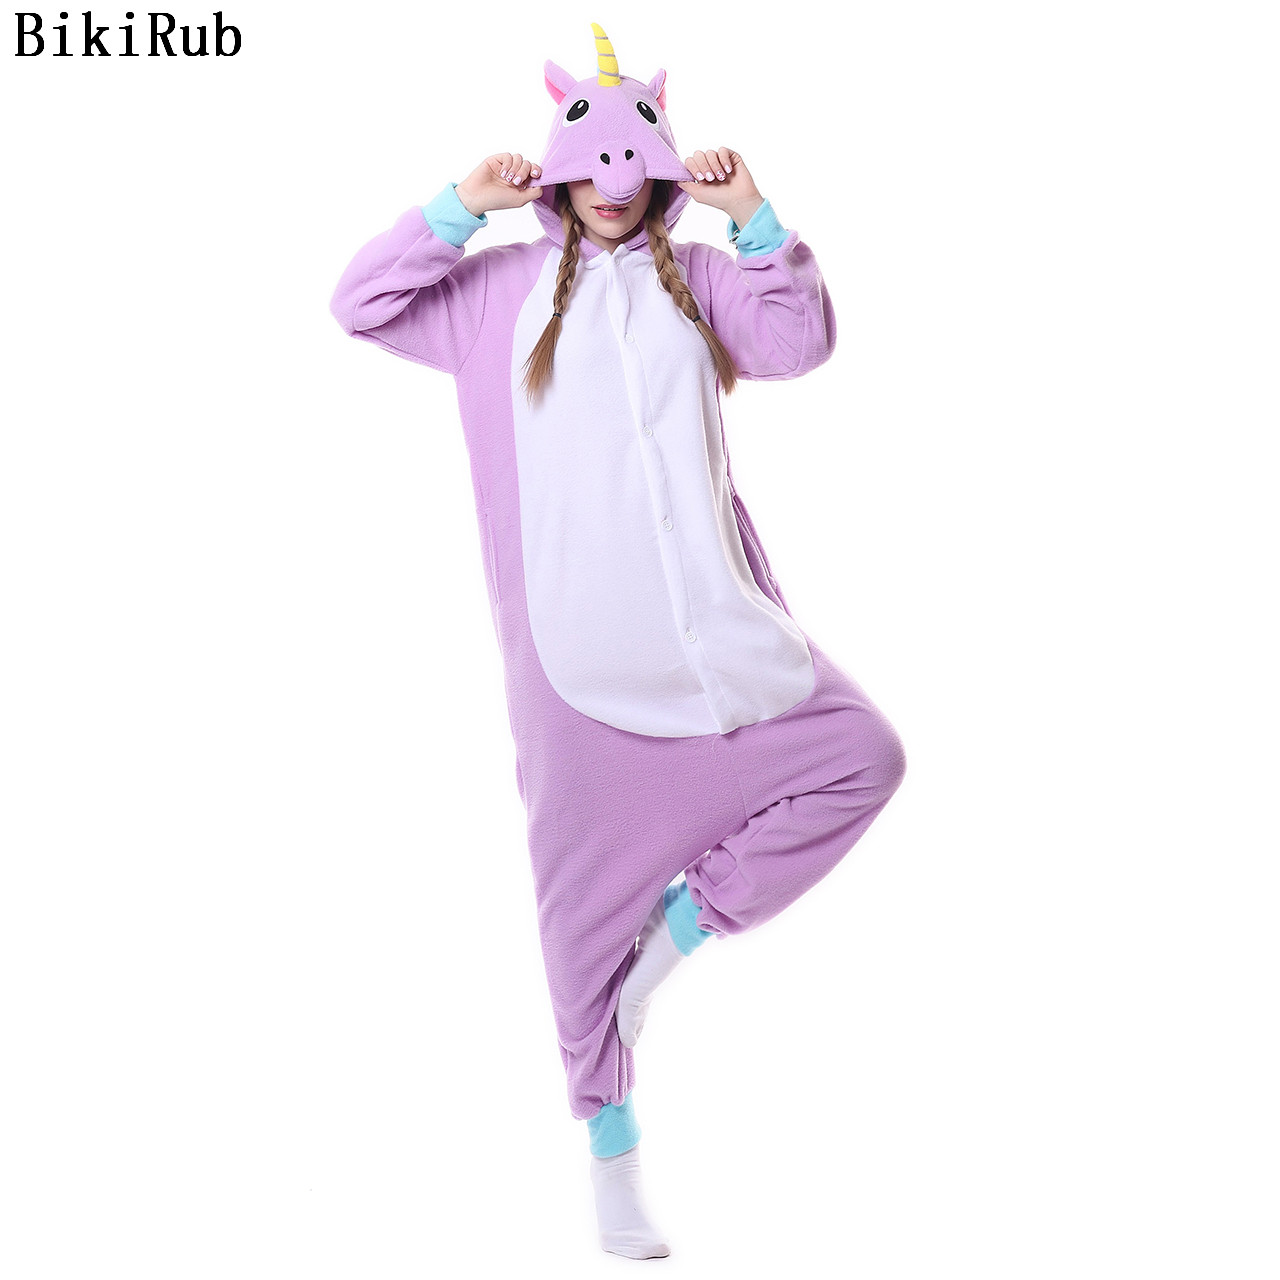 Hooded   Pajamas   kigurumi All in One Pyjama Animal Suits Cosplay Purple Pegasus Unicorn Garment Women Animal   Pajama     Set   Sleepwear